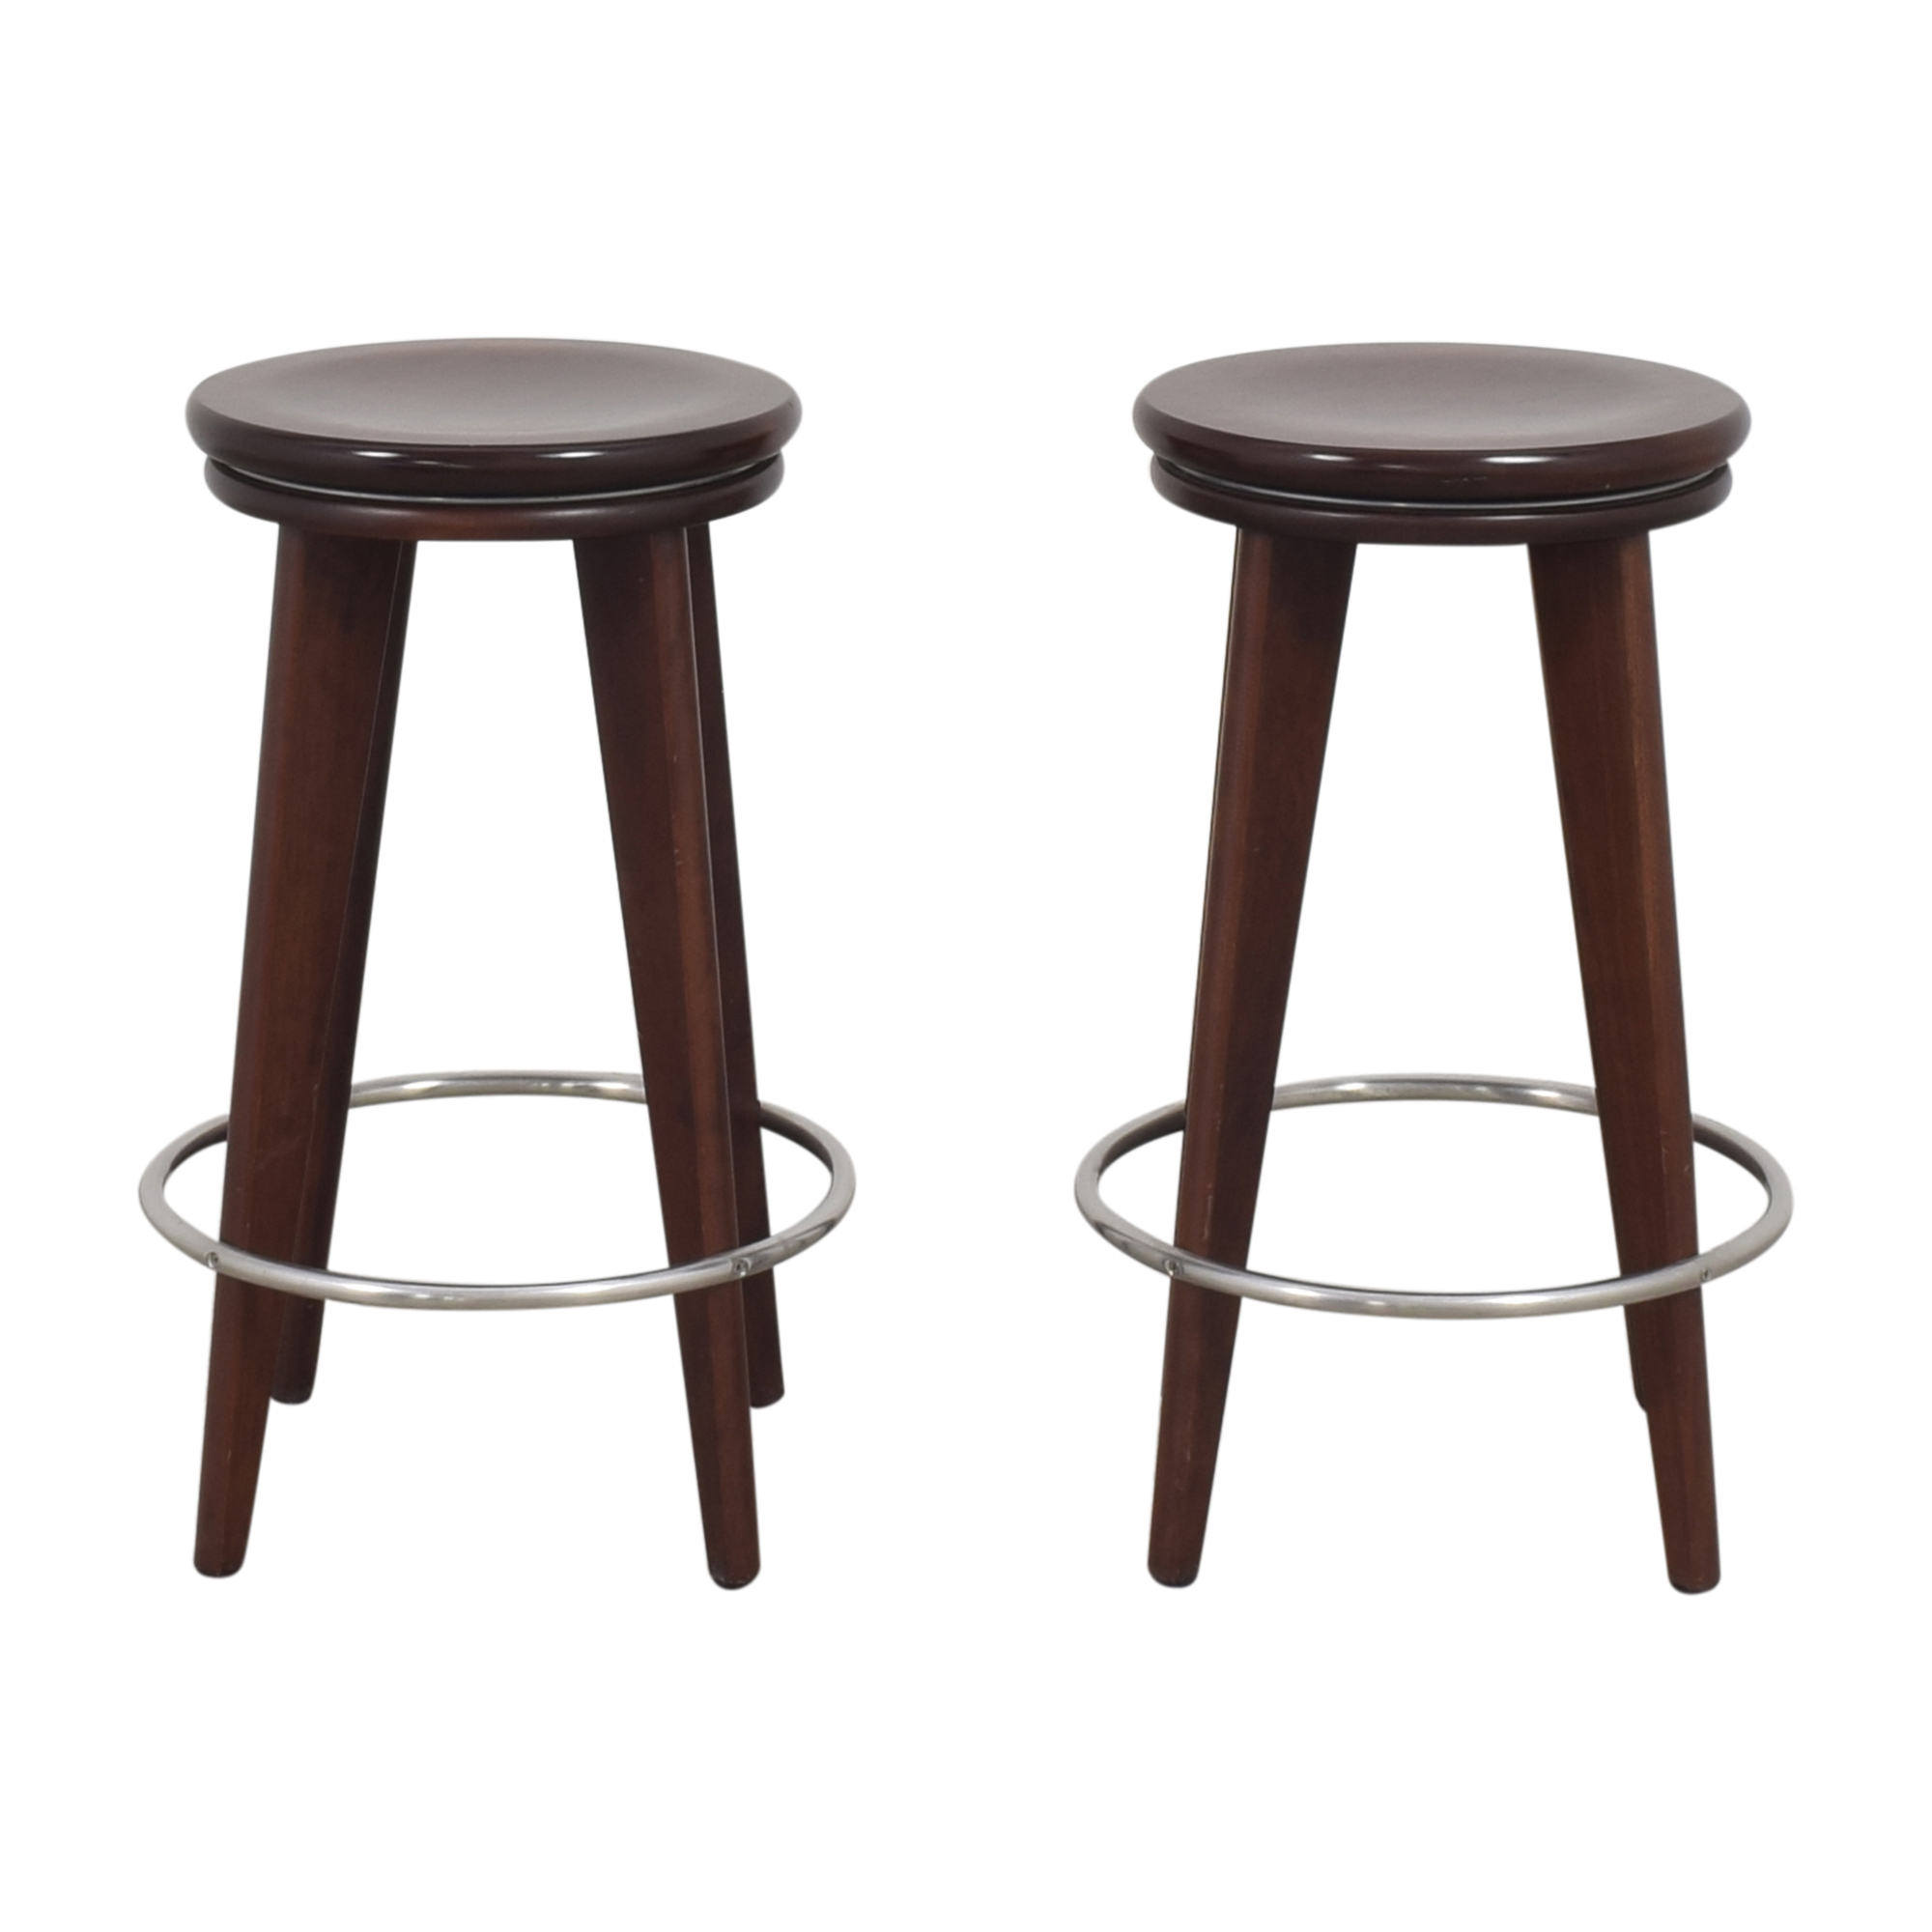 Dennis Miller Dennis Miller Altura Top Counter Stools for sale